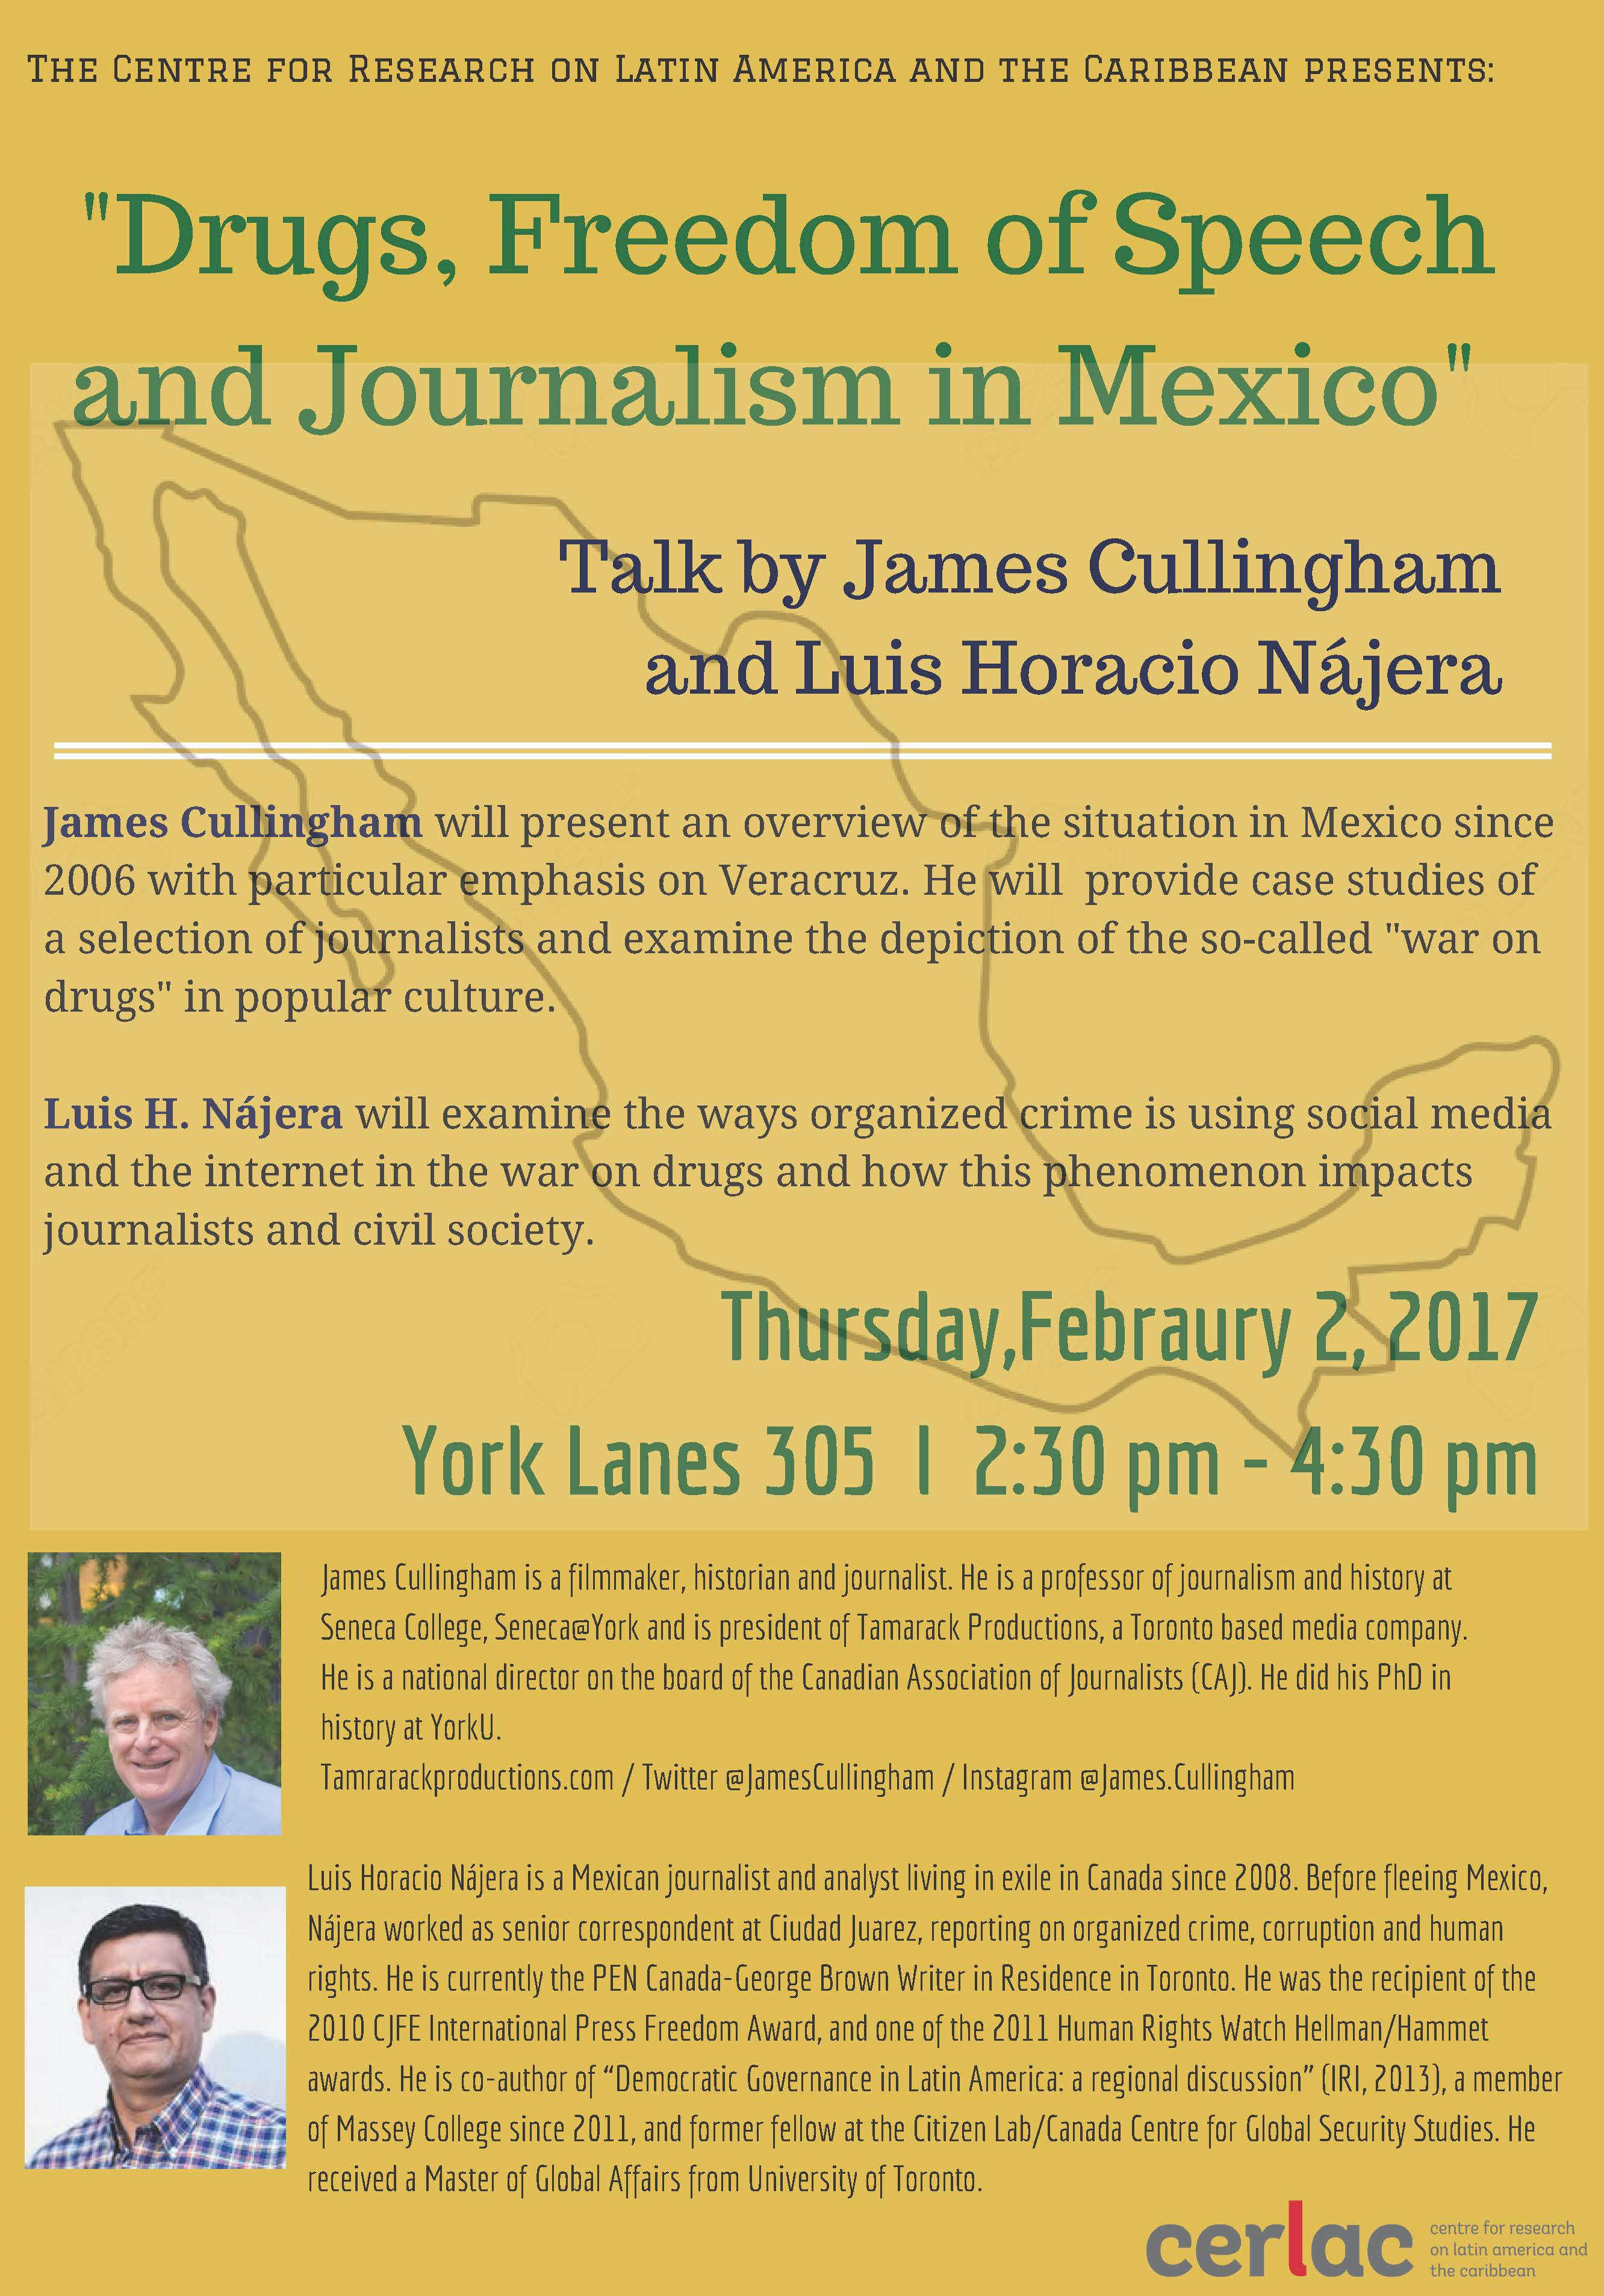 """Drugs, Freedom of Speech and Journalism in Mexico"". Talk by James Cullingham and Luis Horacio Nájera. @ York Lanes 305"